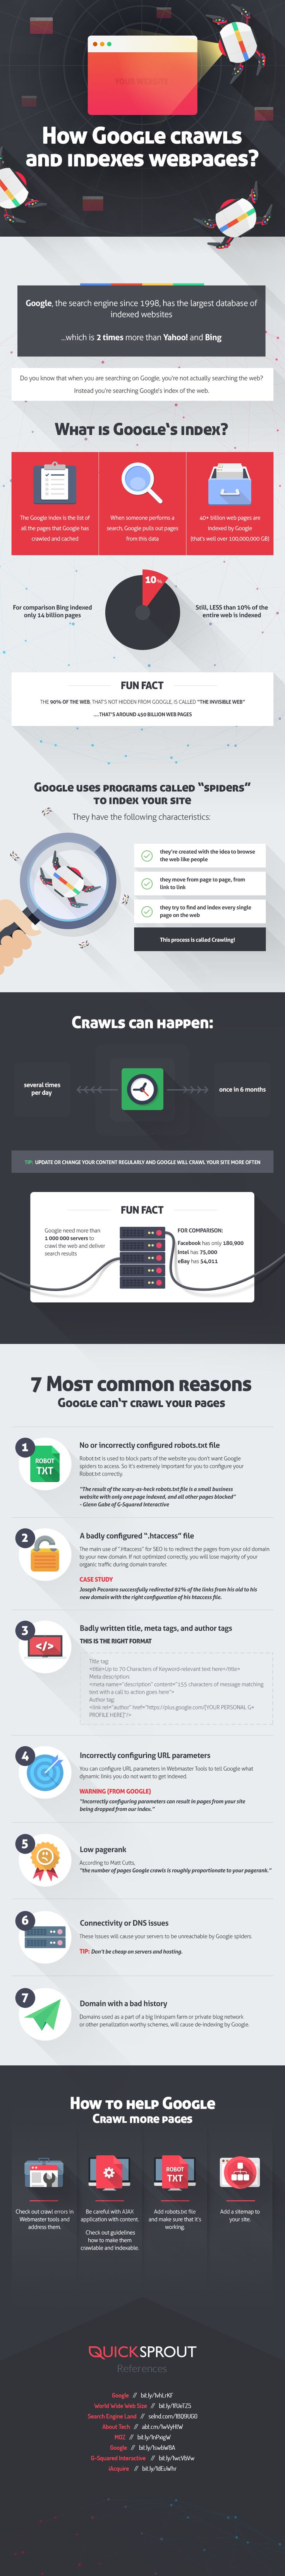 How Google crawles and indexes web pages? via @abondance_com [infographie]